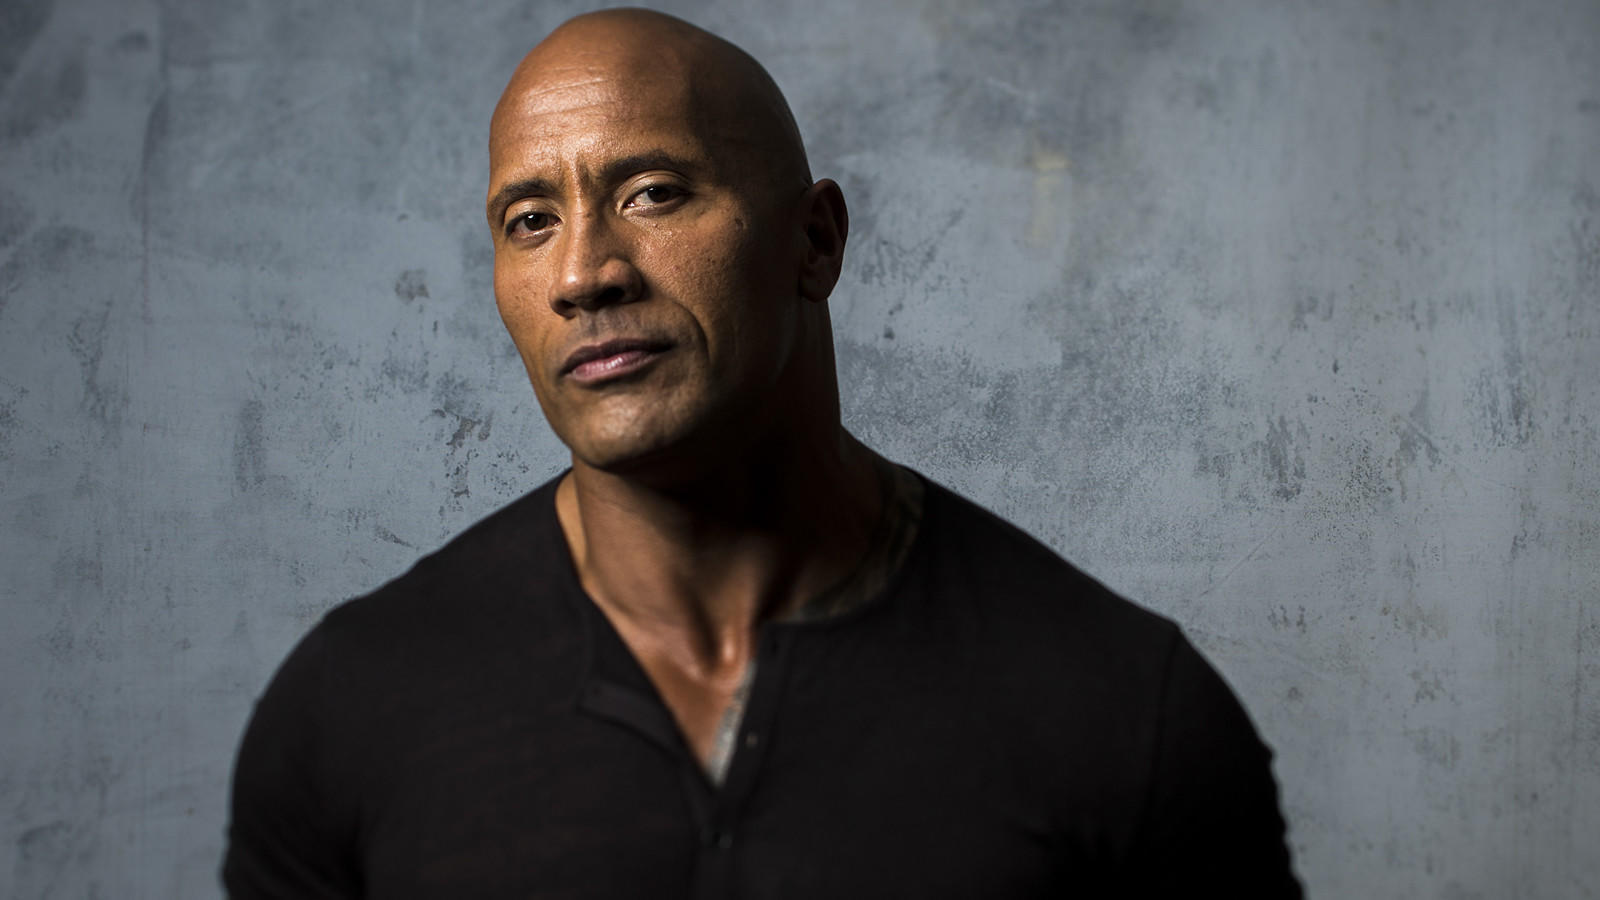 dwayne johnson - photo #28